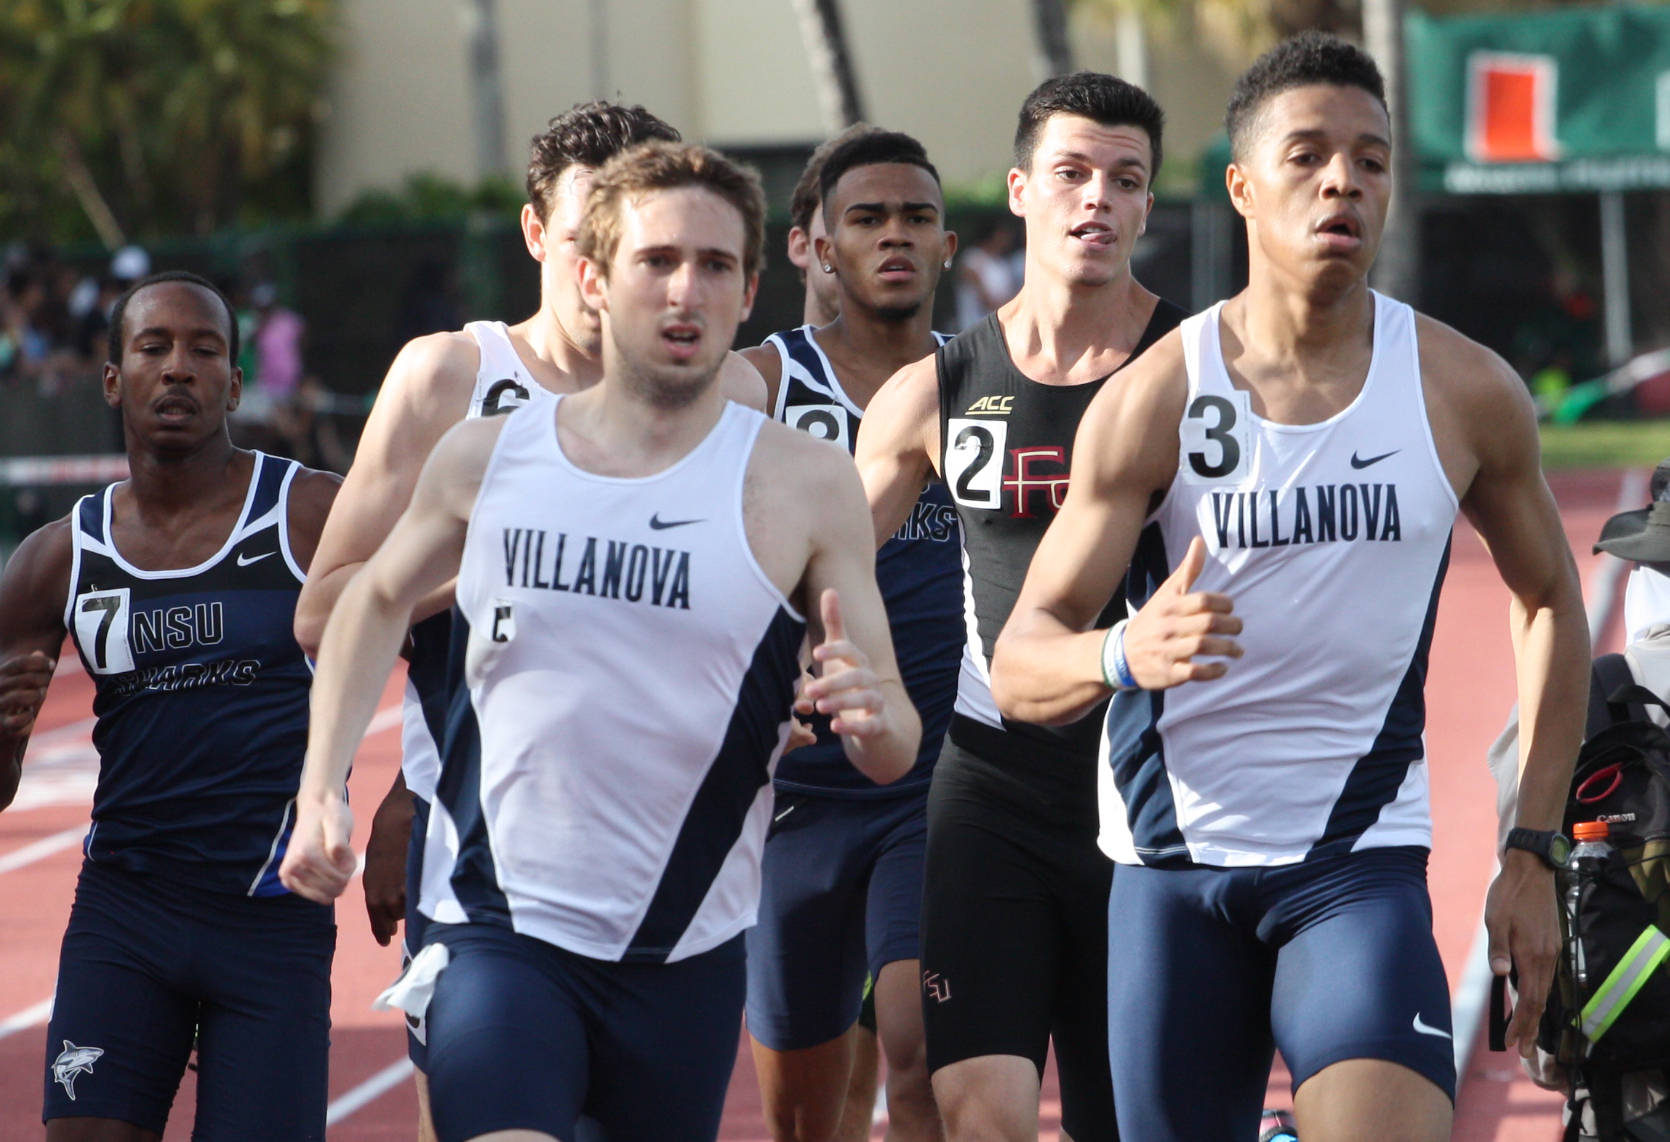 Matt Magee, with tongue out, chasing a Villanova pair in the 800.